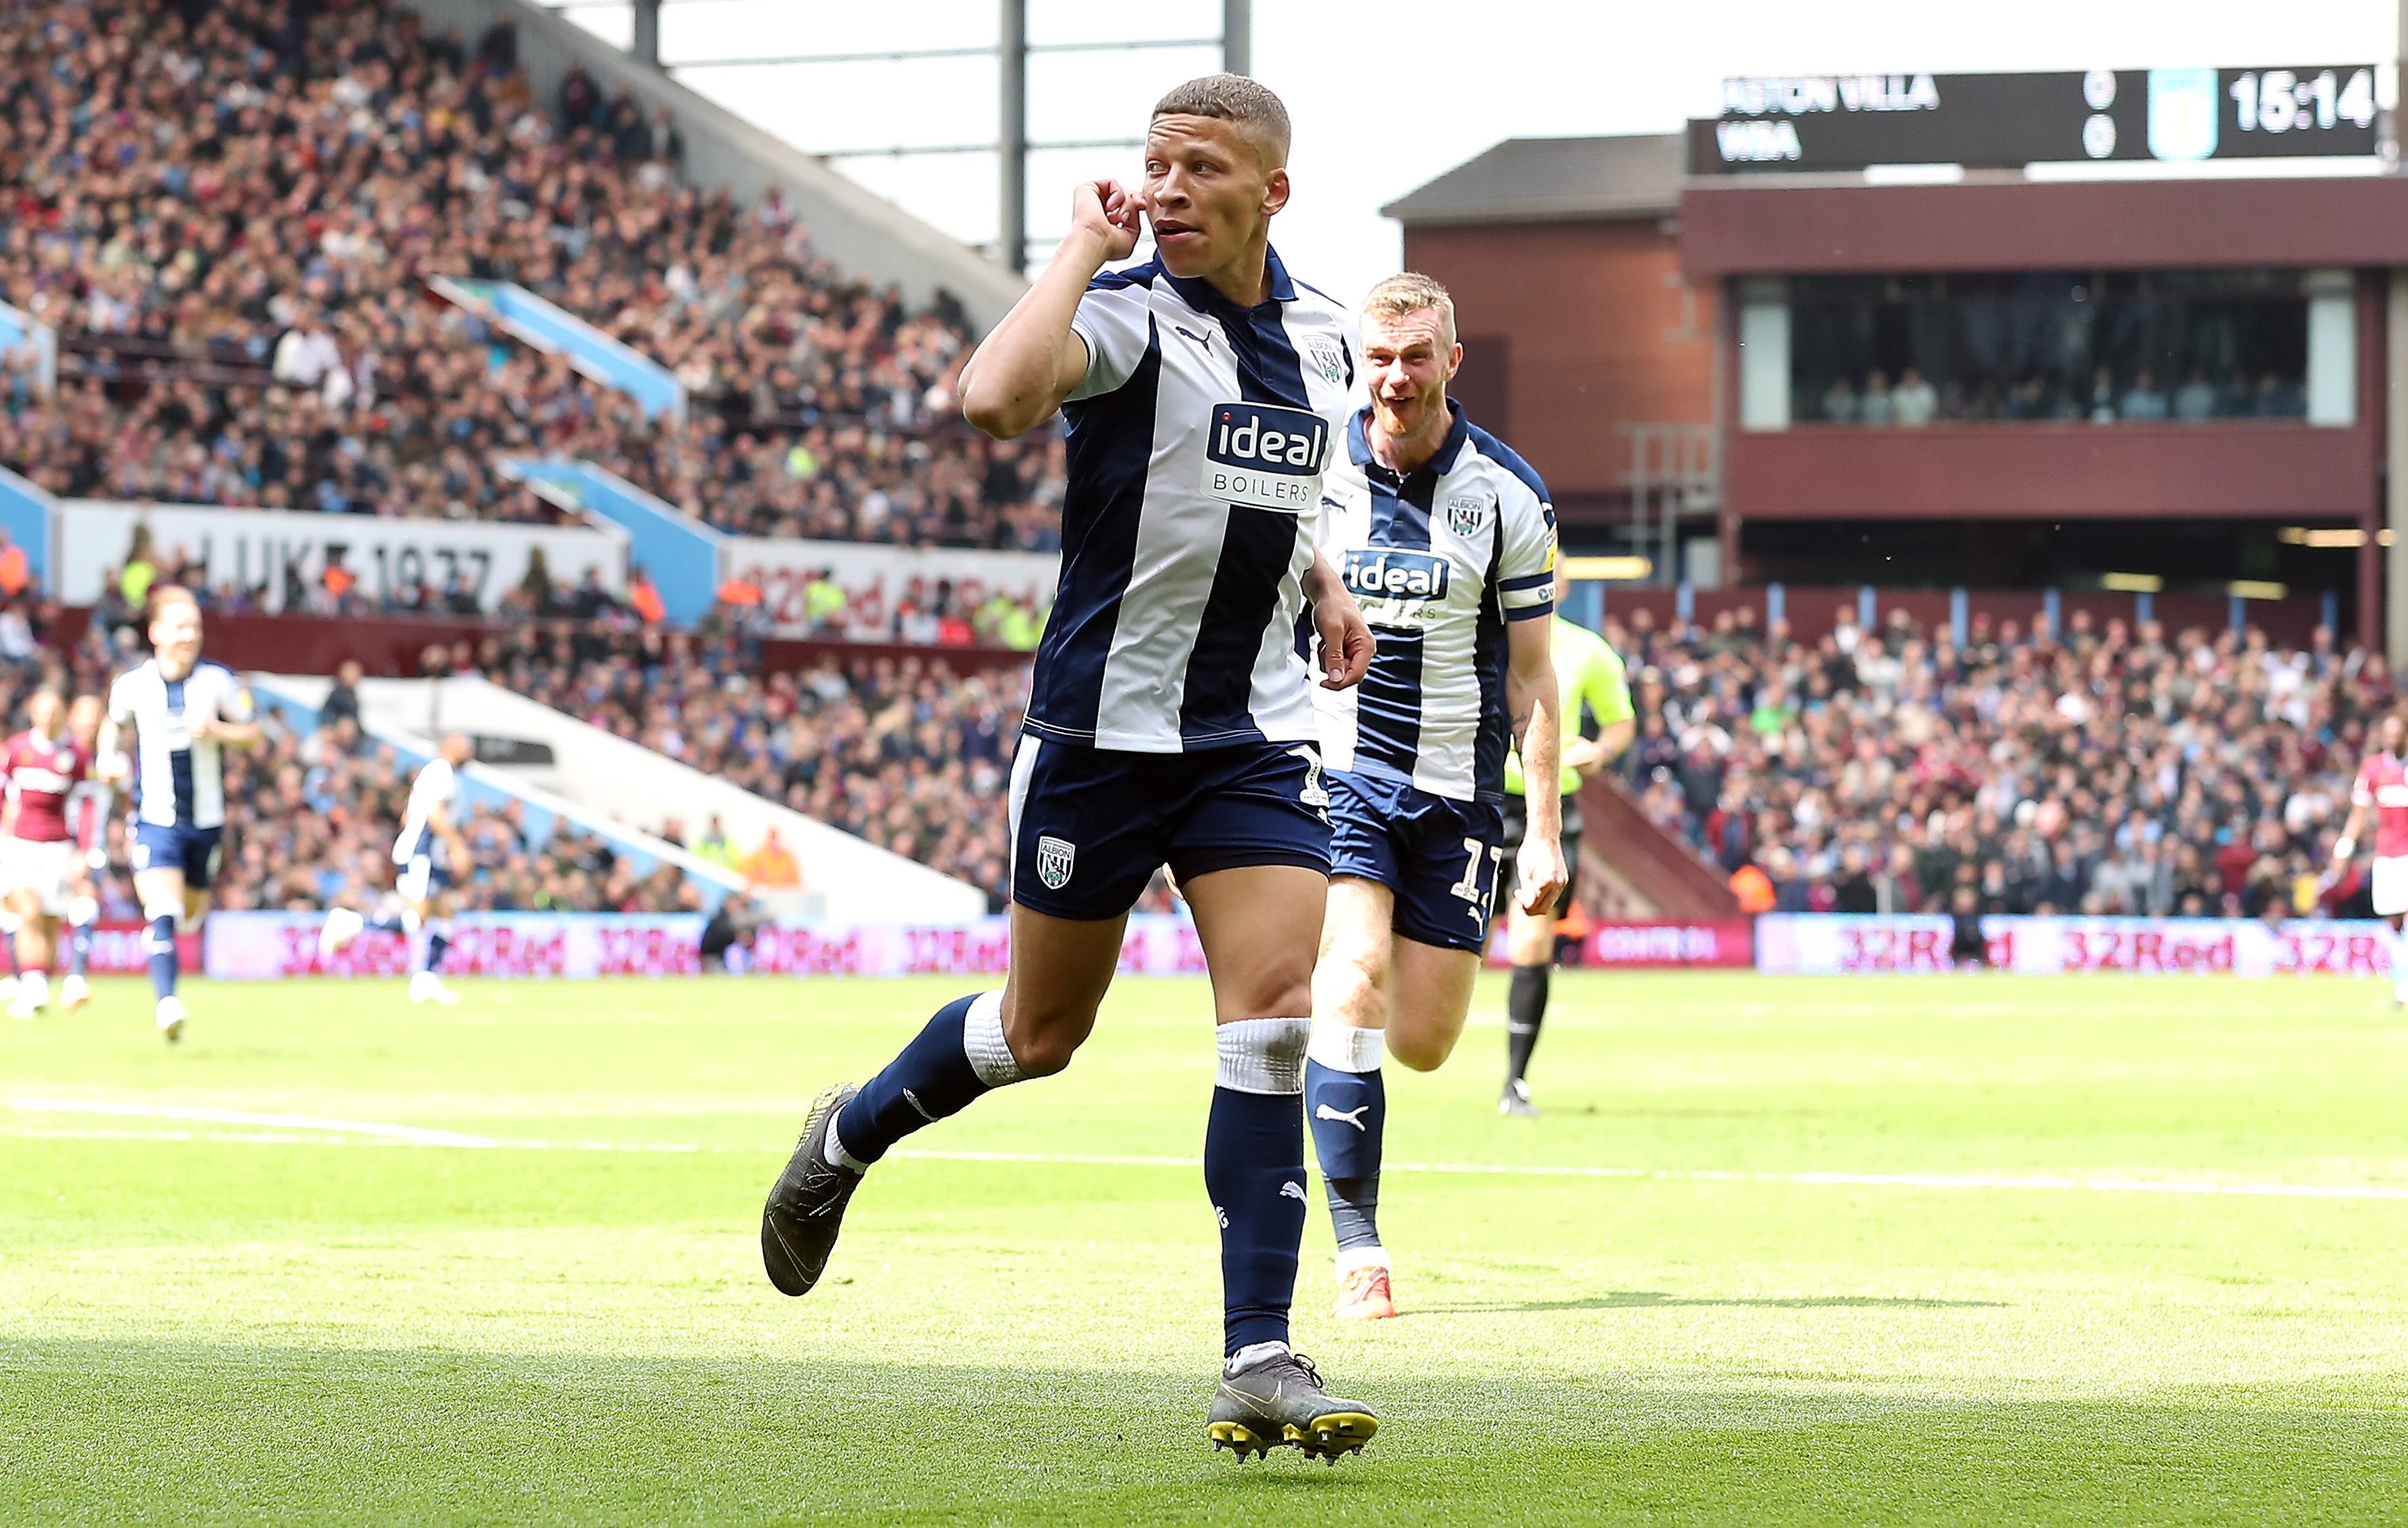 Aston Villa target Dwight Gayle as possible replacement for Tammy Abraham